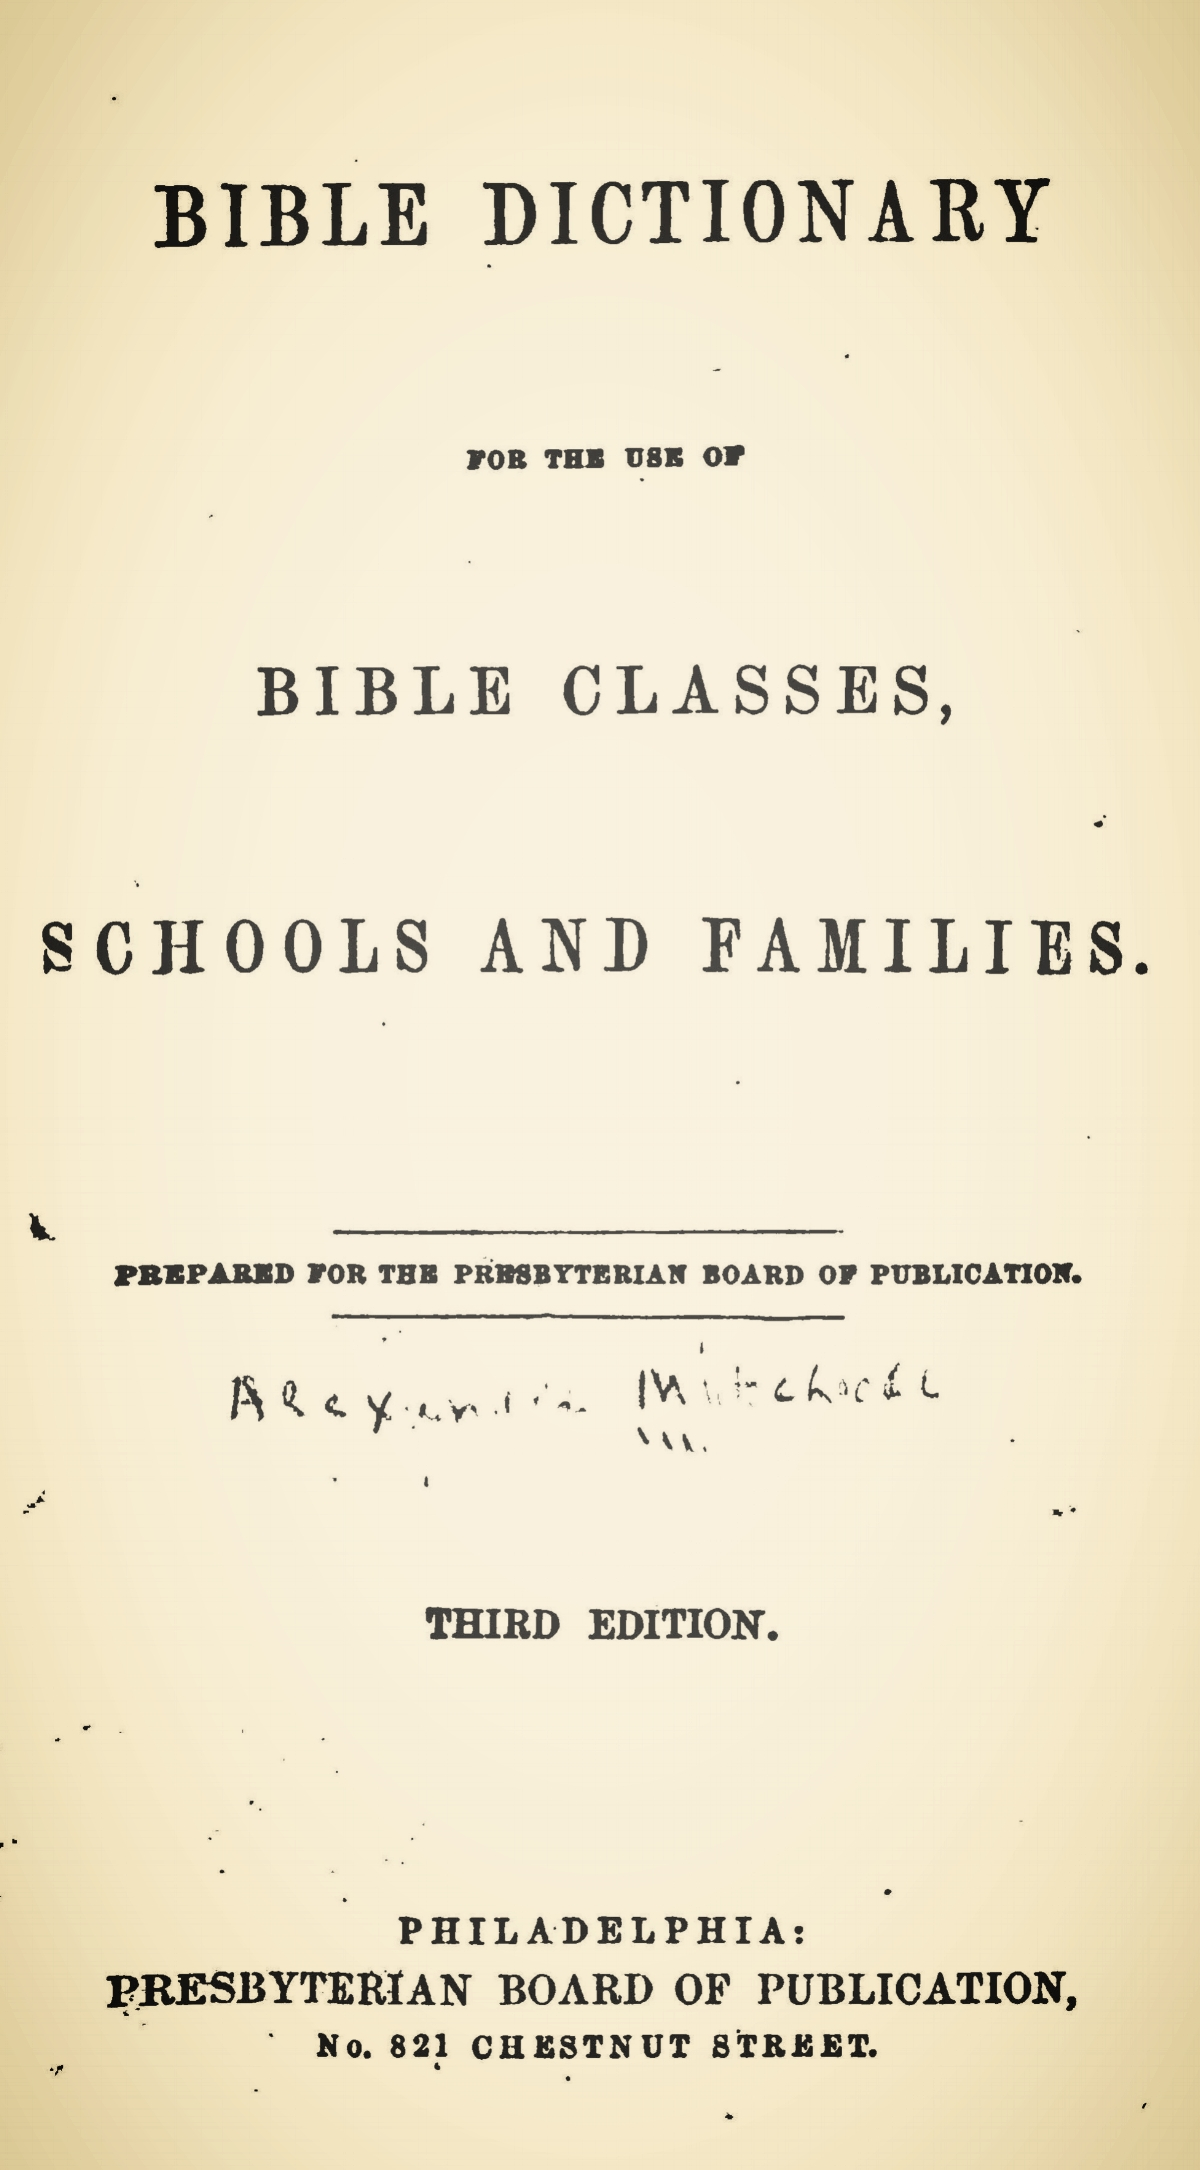 Engles, William Morrison, Bible Dictionary Title Page.jpg